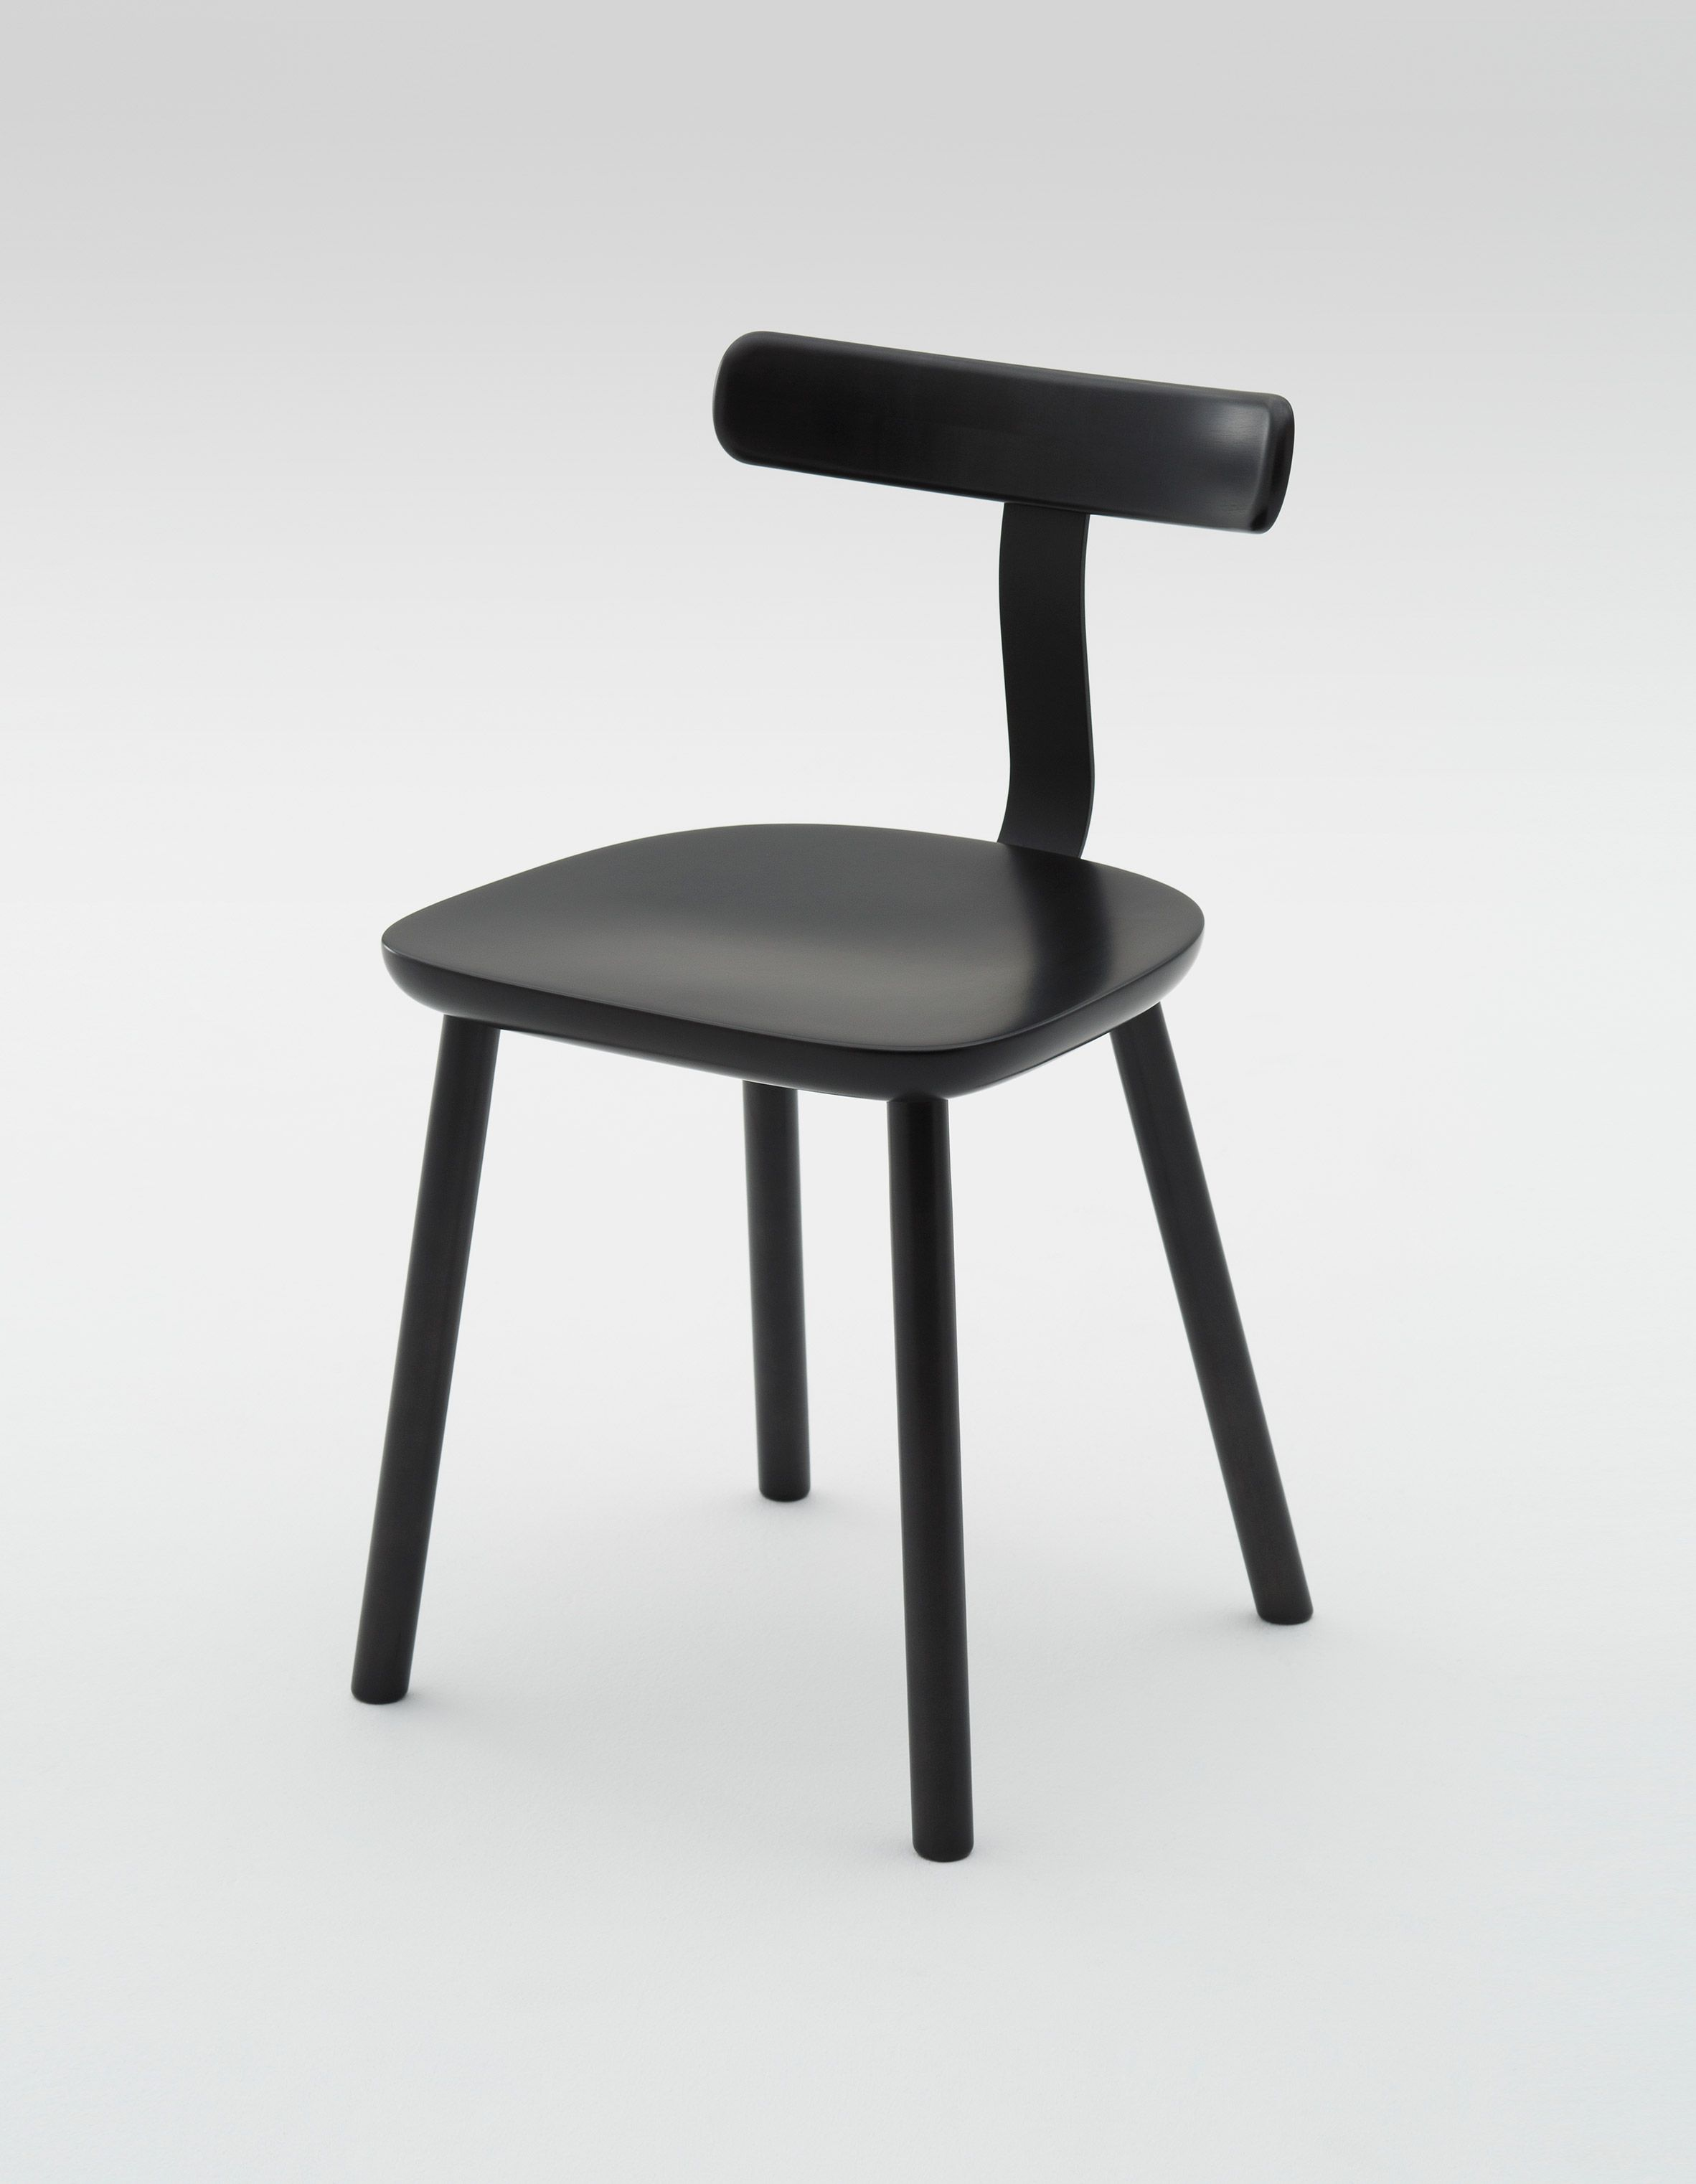 Jasper Morrison expands wood and steel furniture collection for ...